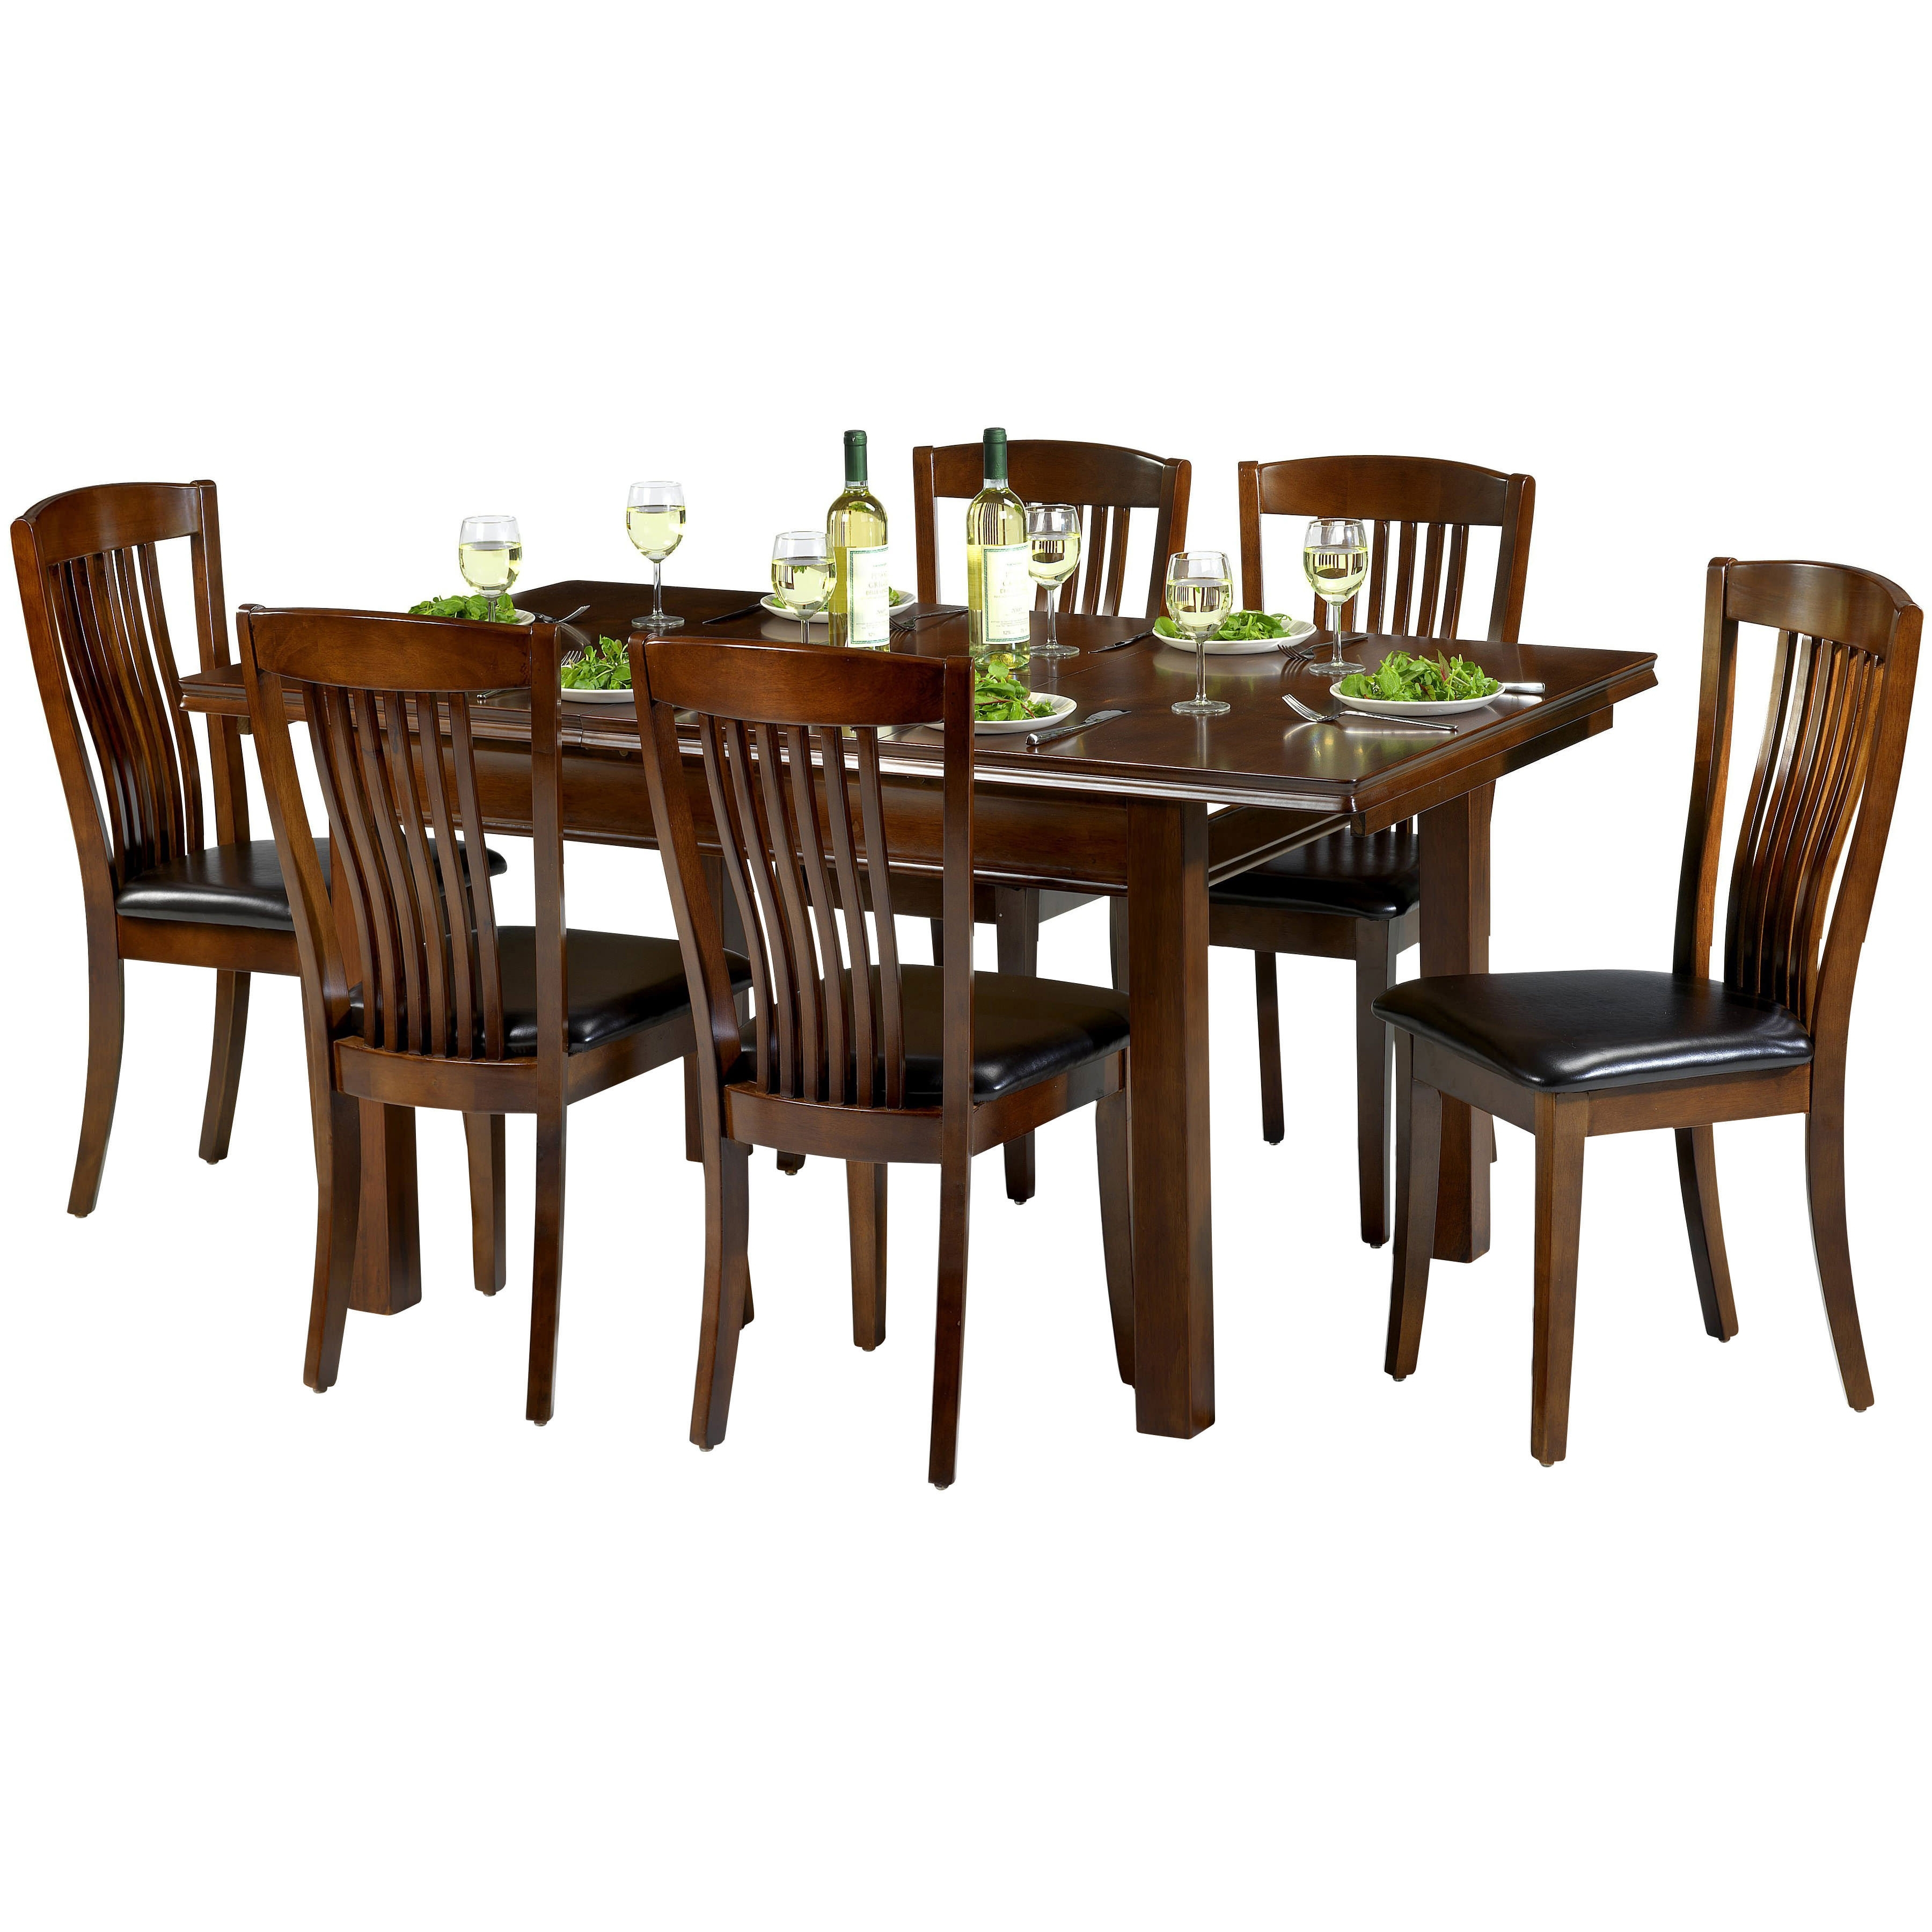 Mahogany Finish Extending Extendable Dining Table And Chair Set With Pertaining To Most Up To Date Mahogany Extending Dining Tables And Chairs (View 14 of 25)